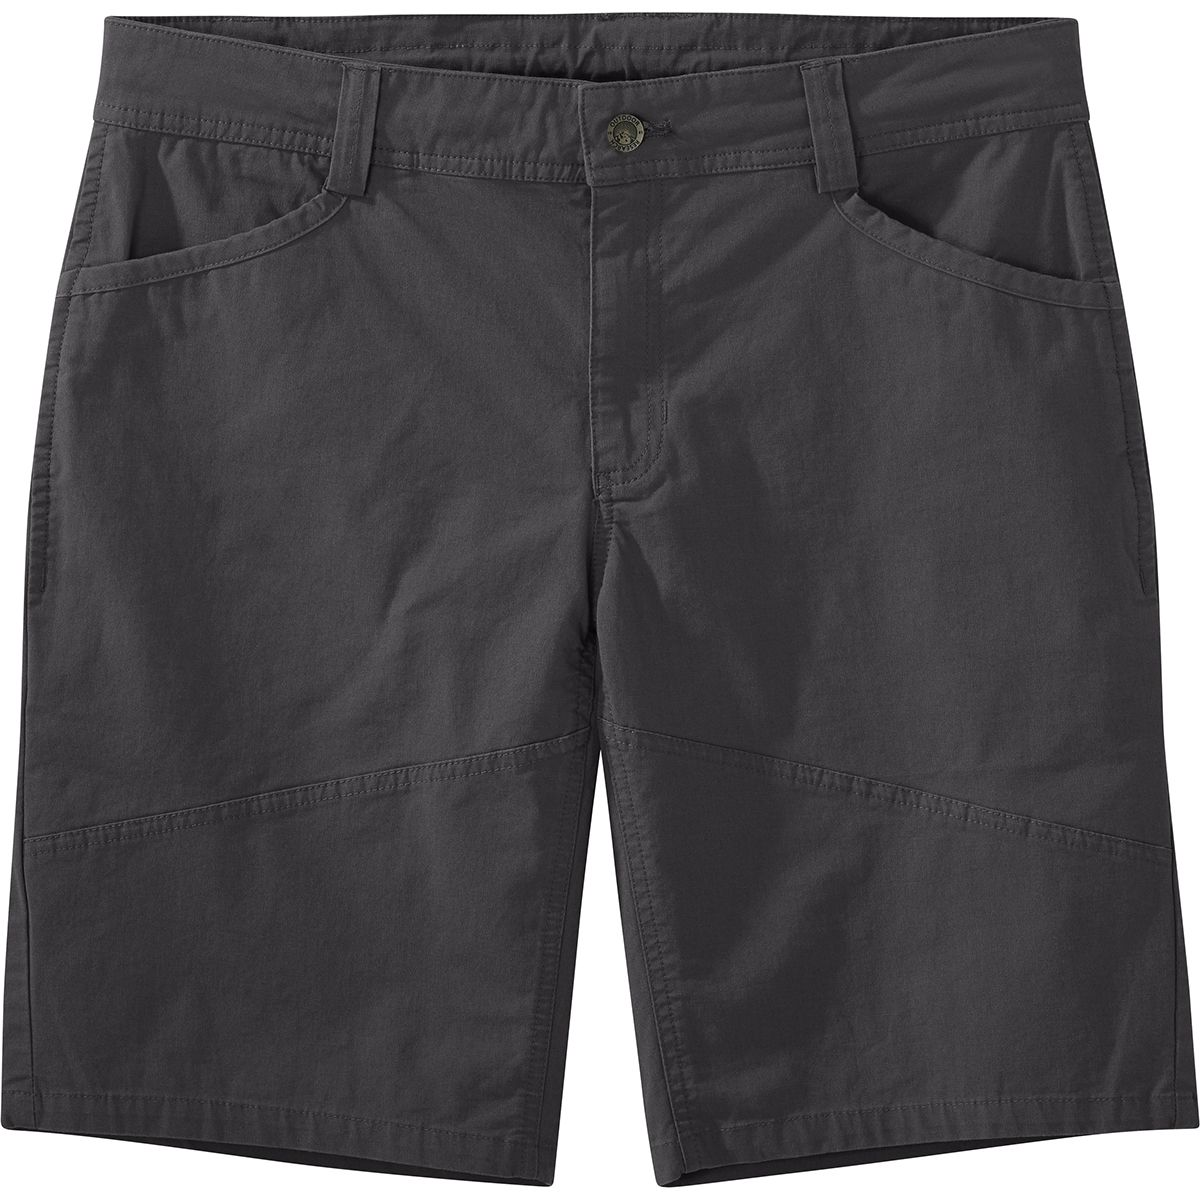 Outdoor Research shorts